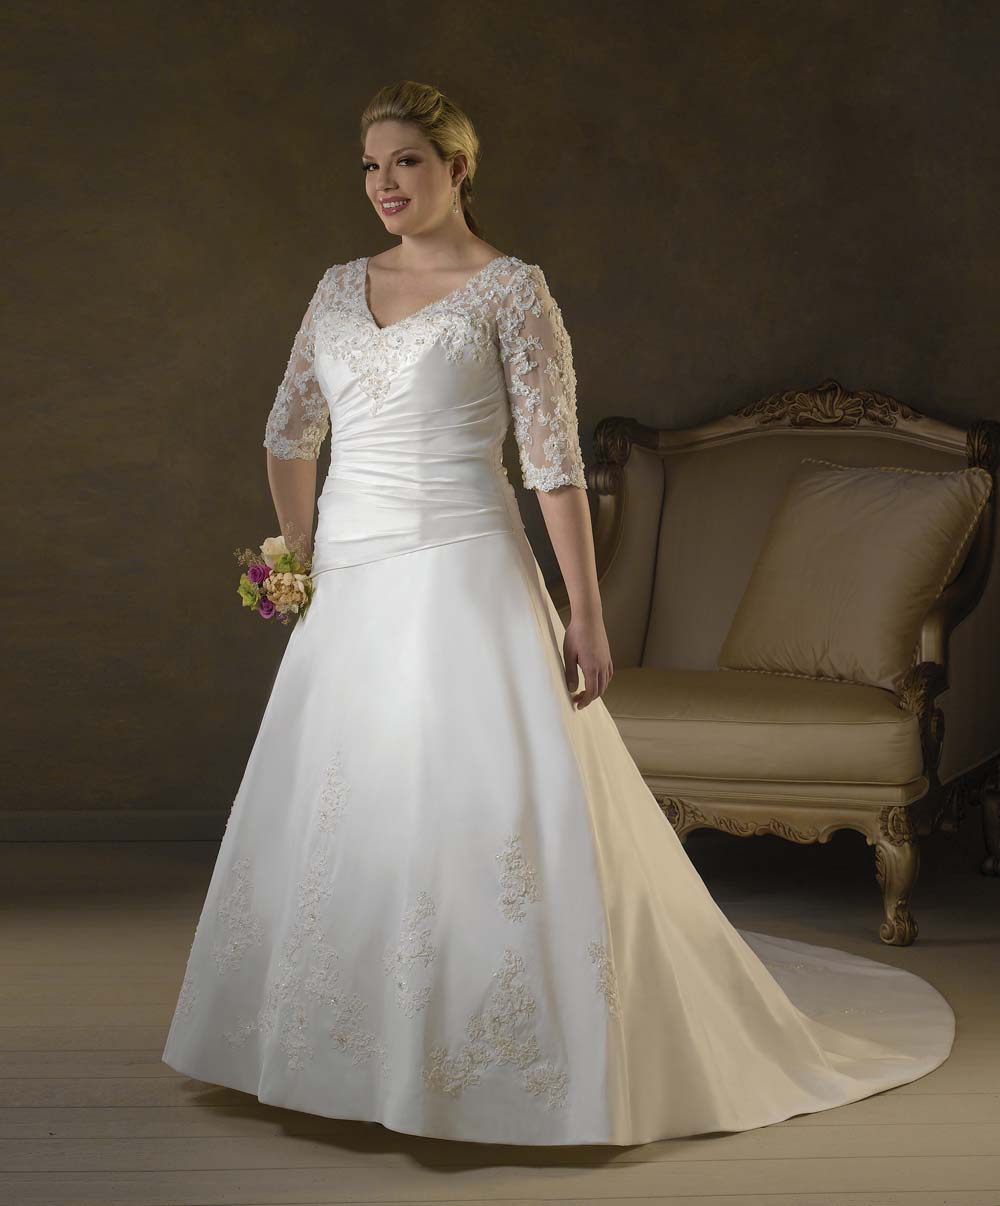 Plus size 3 4 lace sleeves wedding dress gown for Wedding dresses for larger sizes